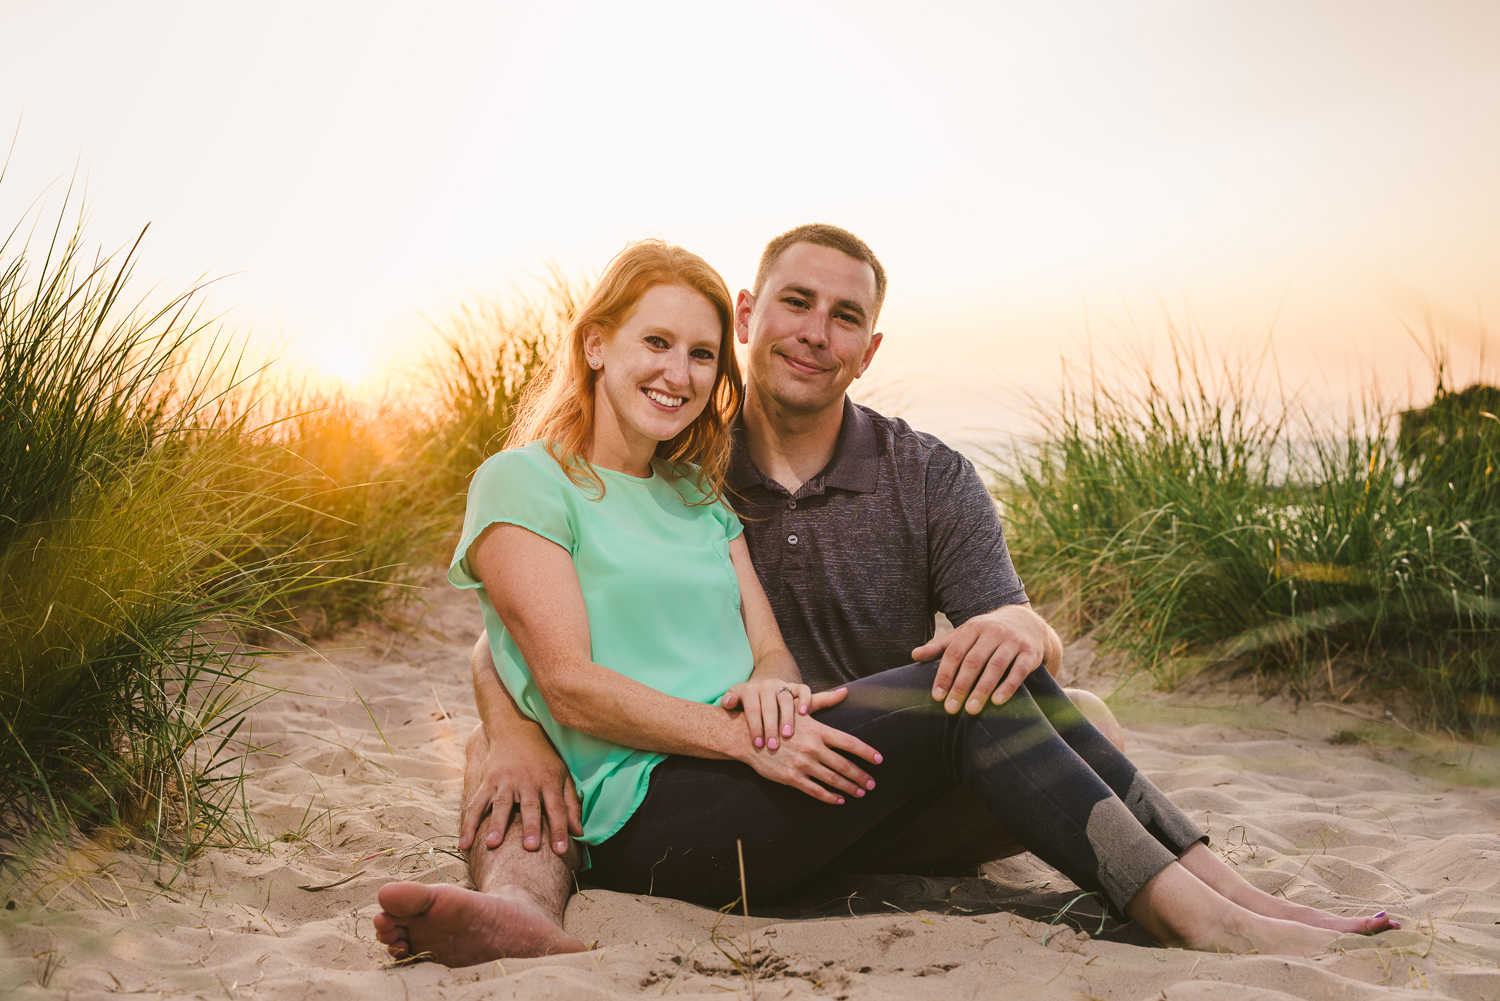 grand-haven-michigan-engagement-session (104).jpg